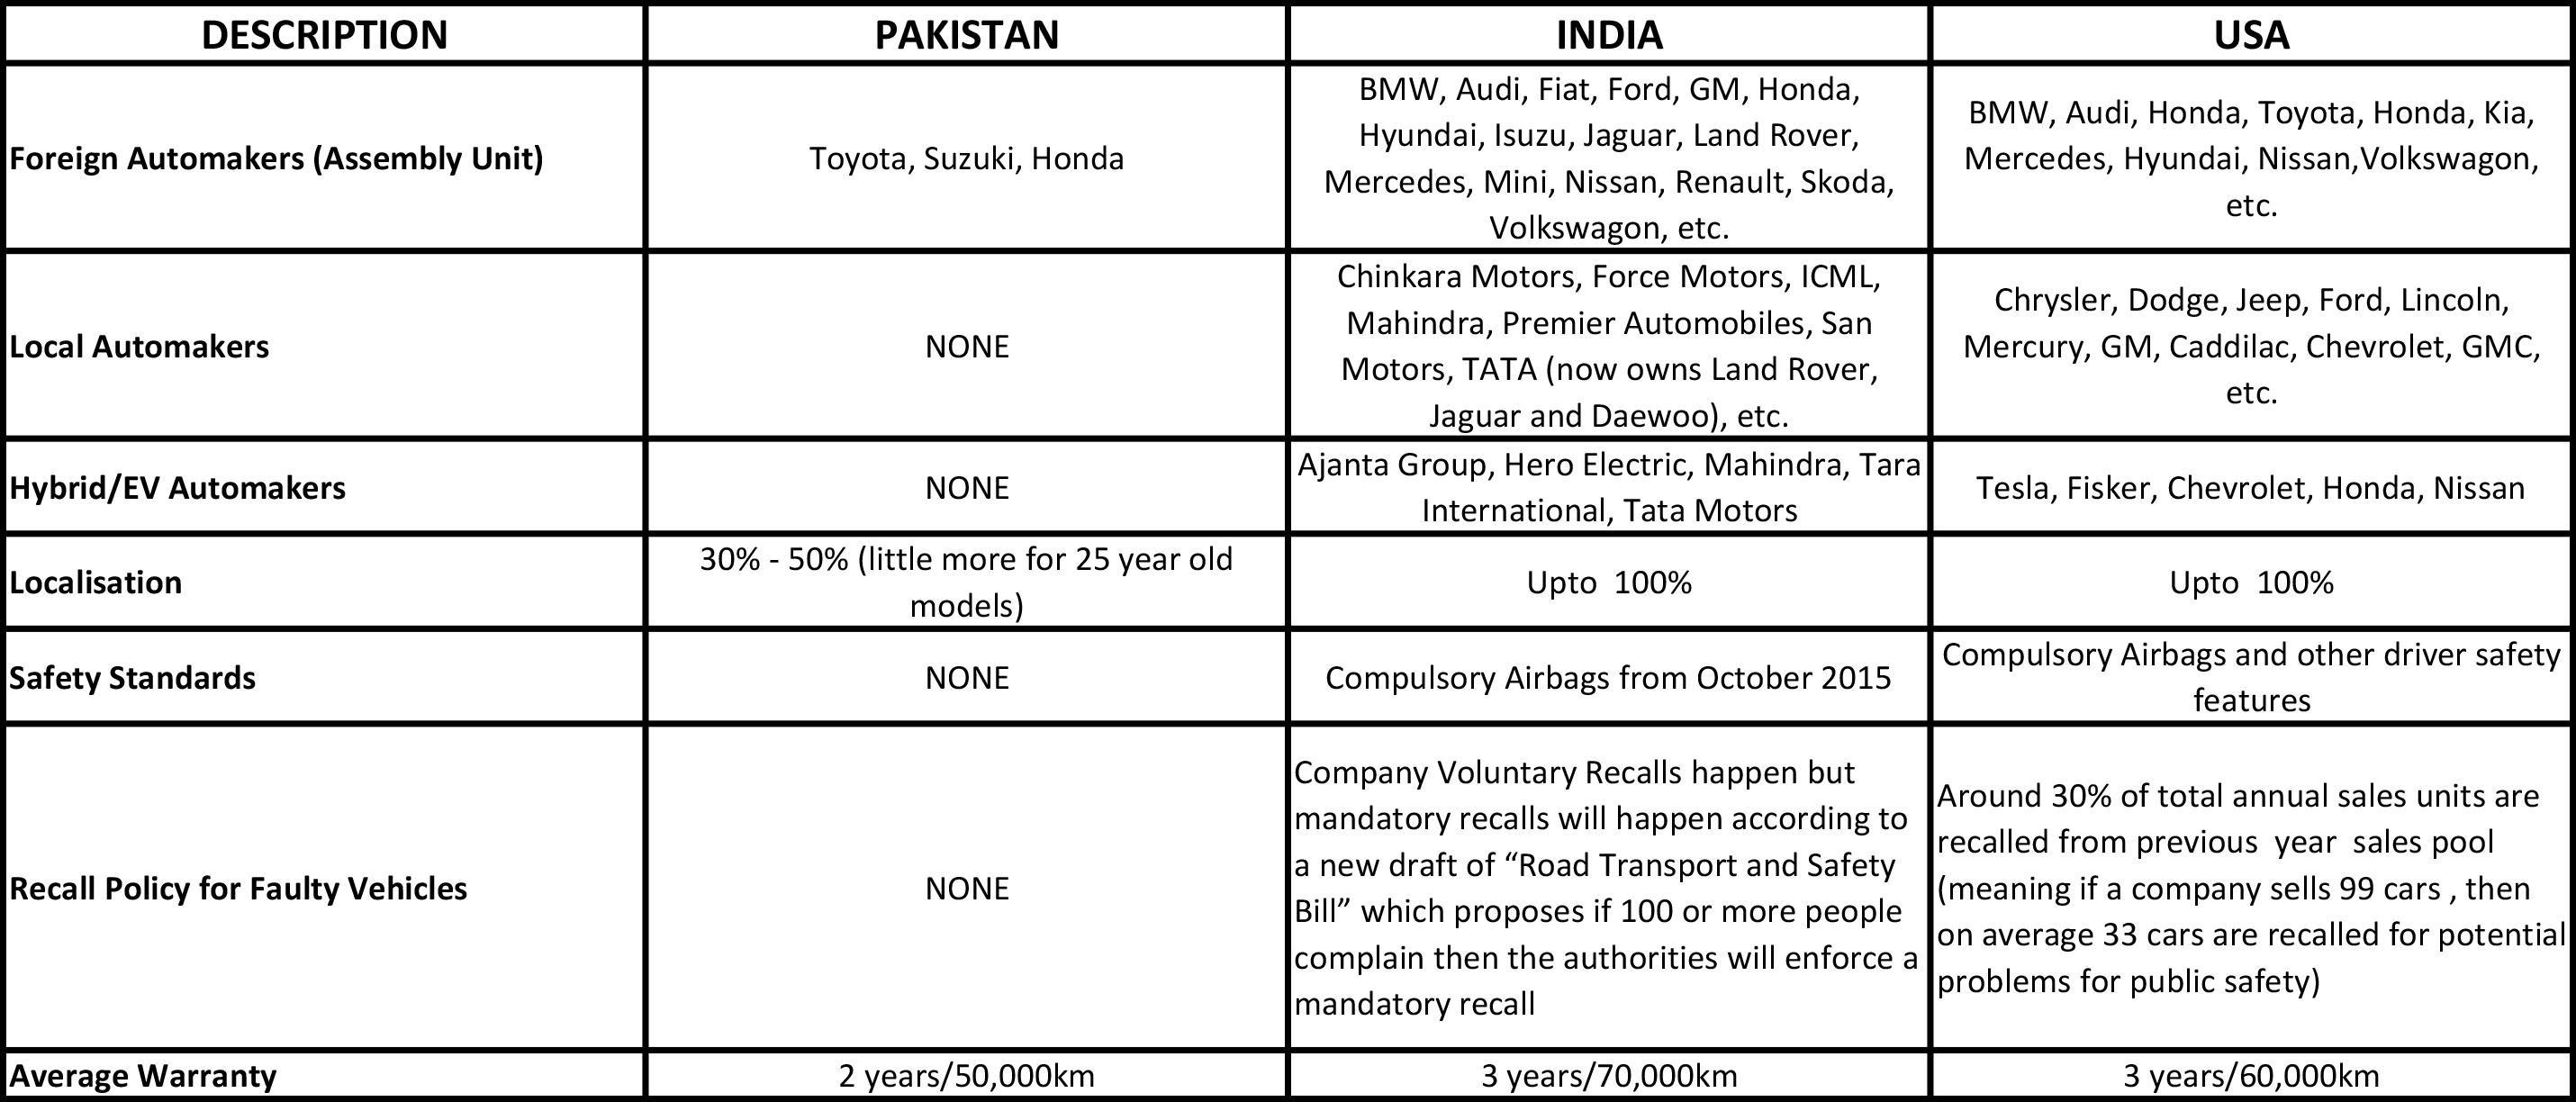 A comparison of Pakistan Auto Industry